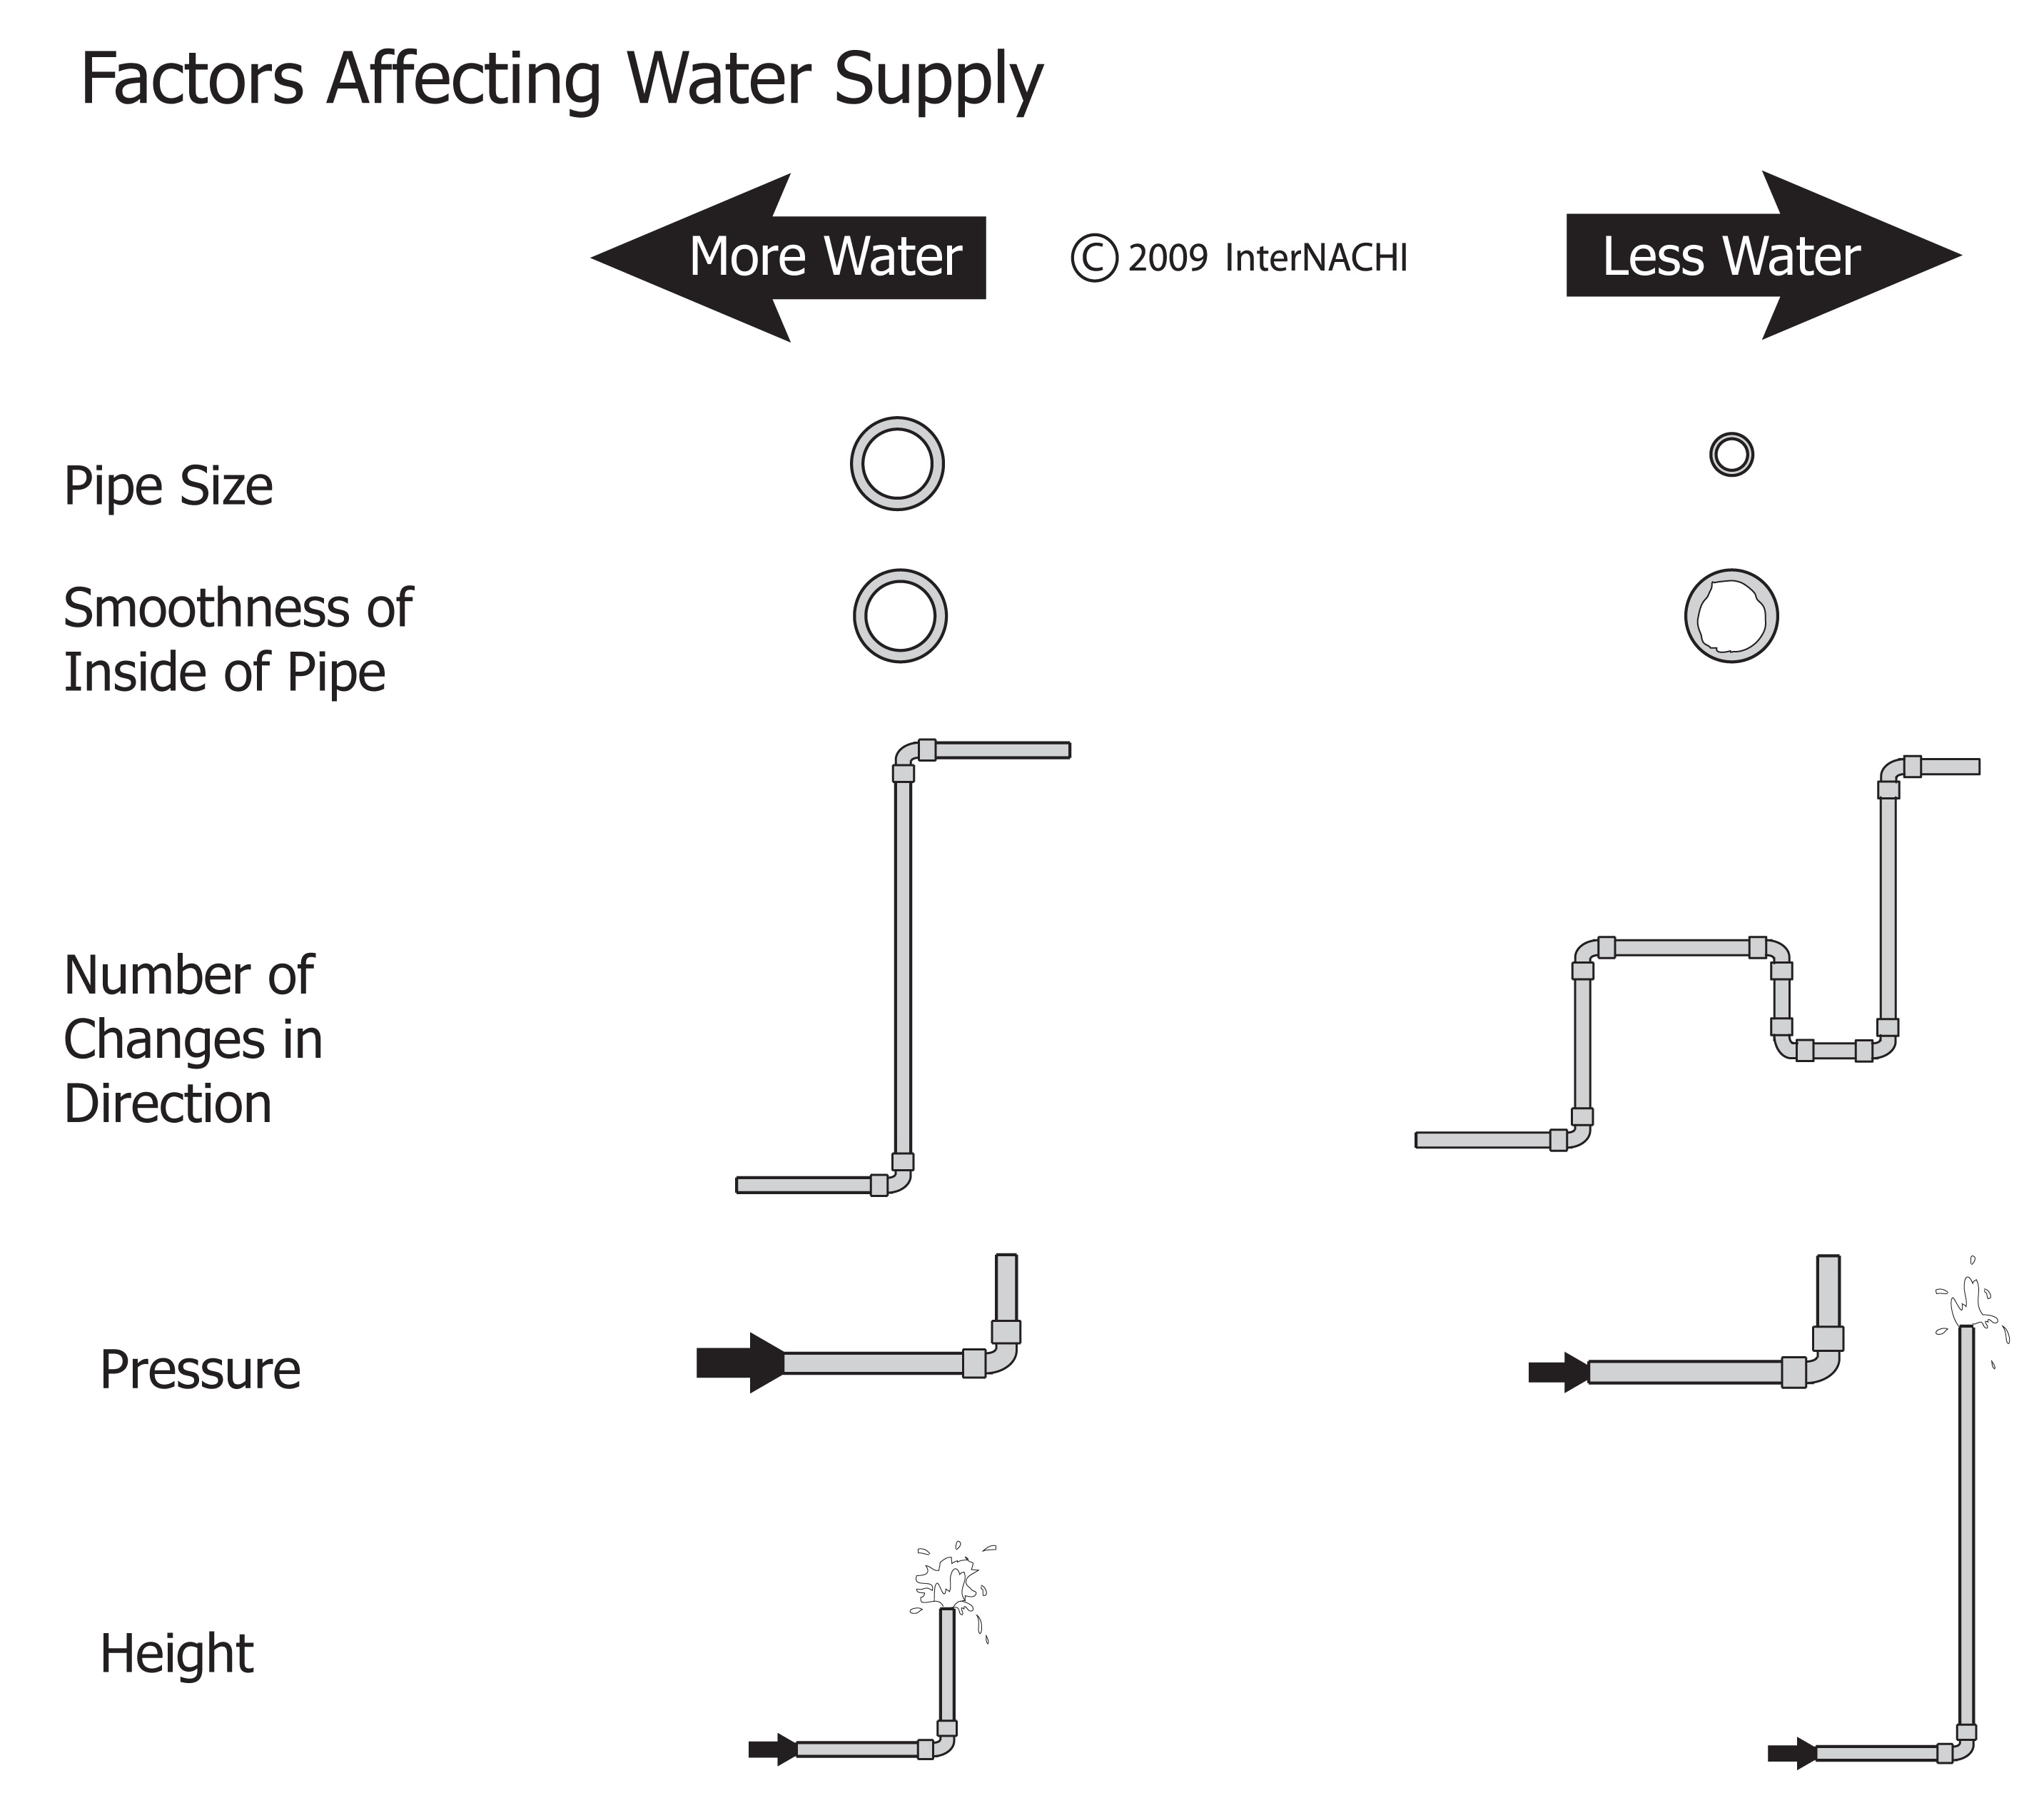 Factors affecting water supply.